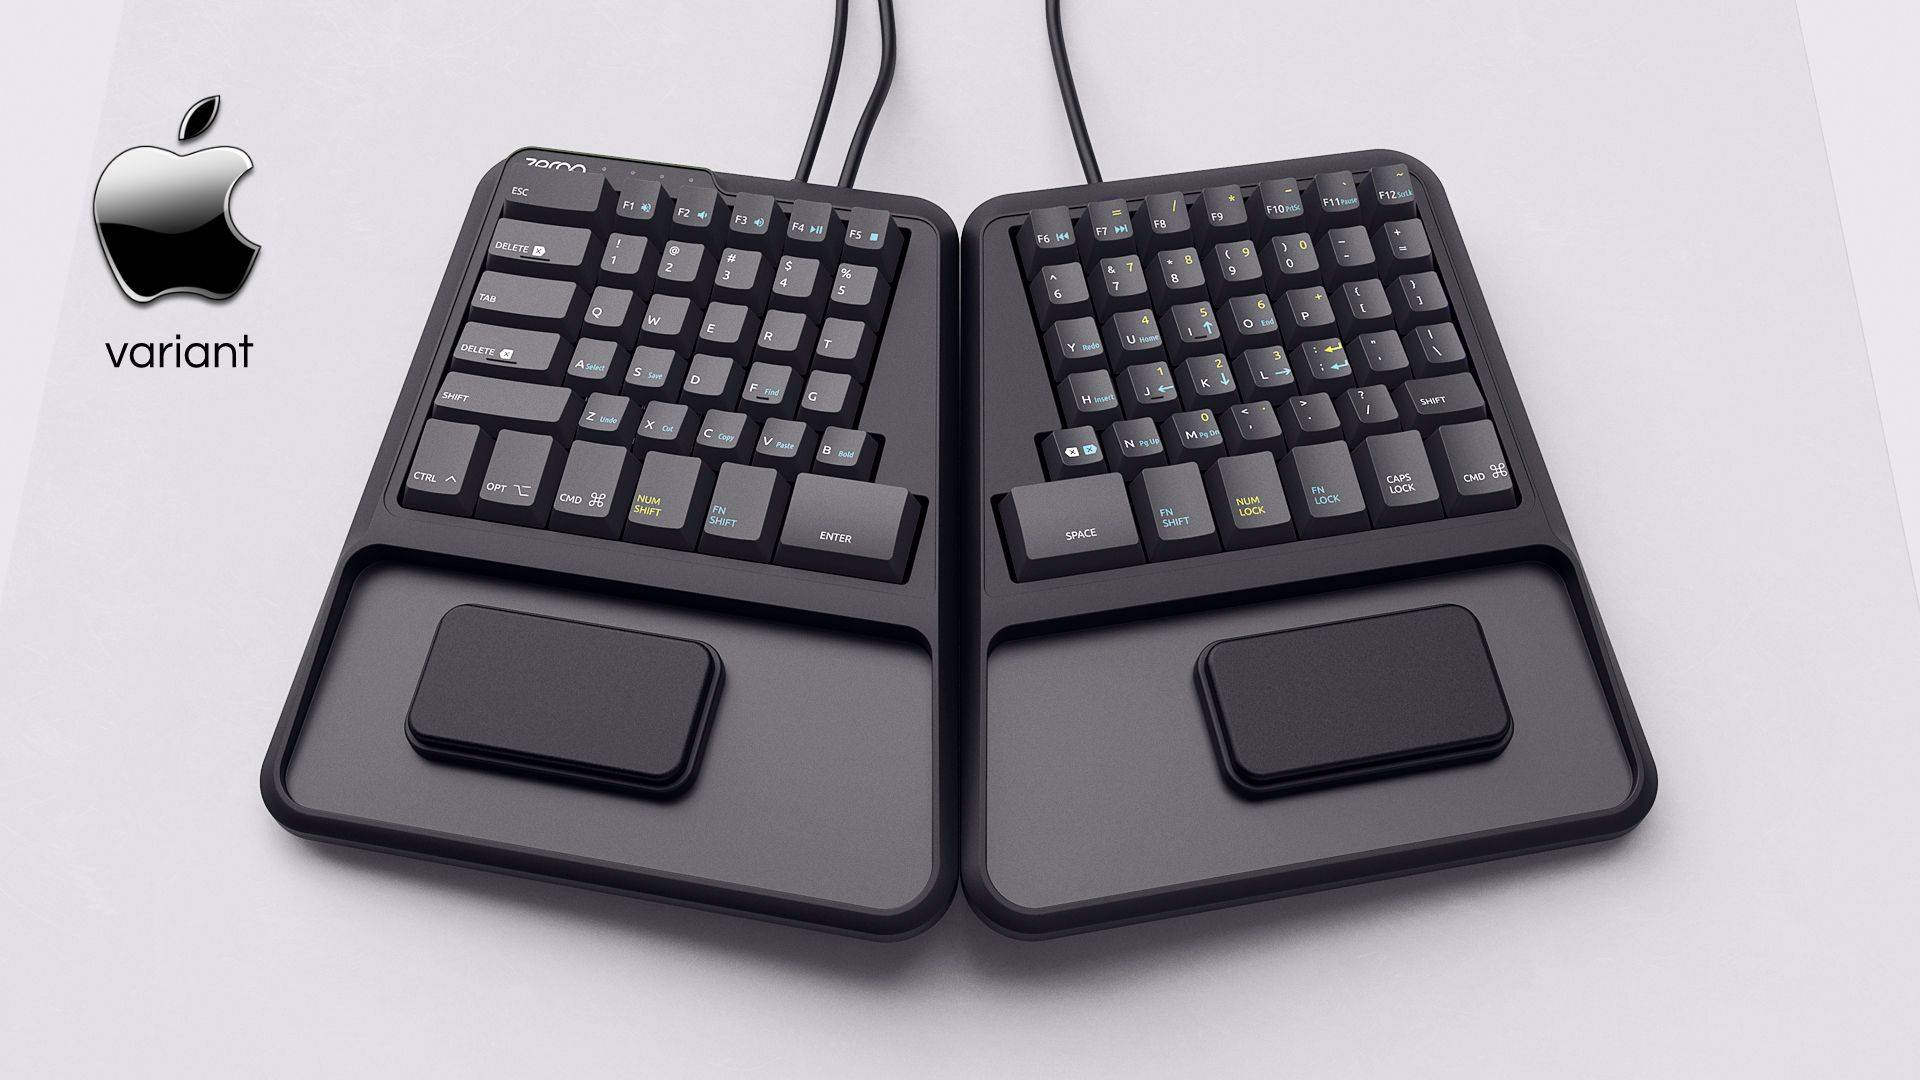 Zergotech Freedom top hero view mechanical keyboard ergonomic